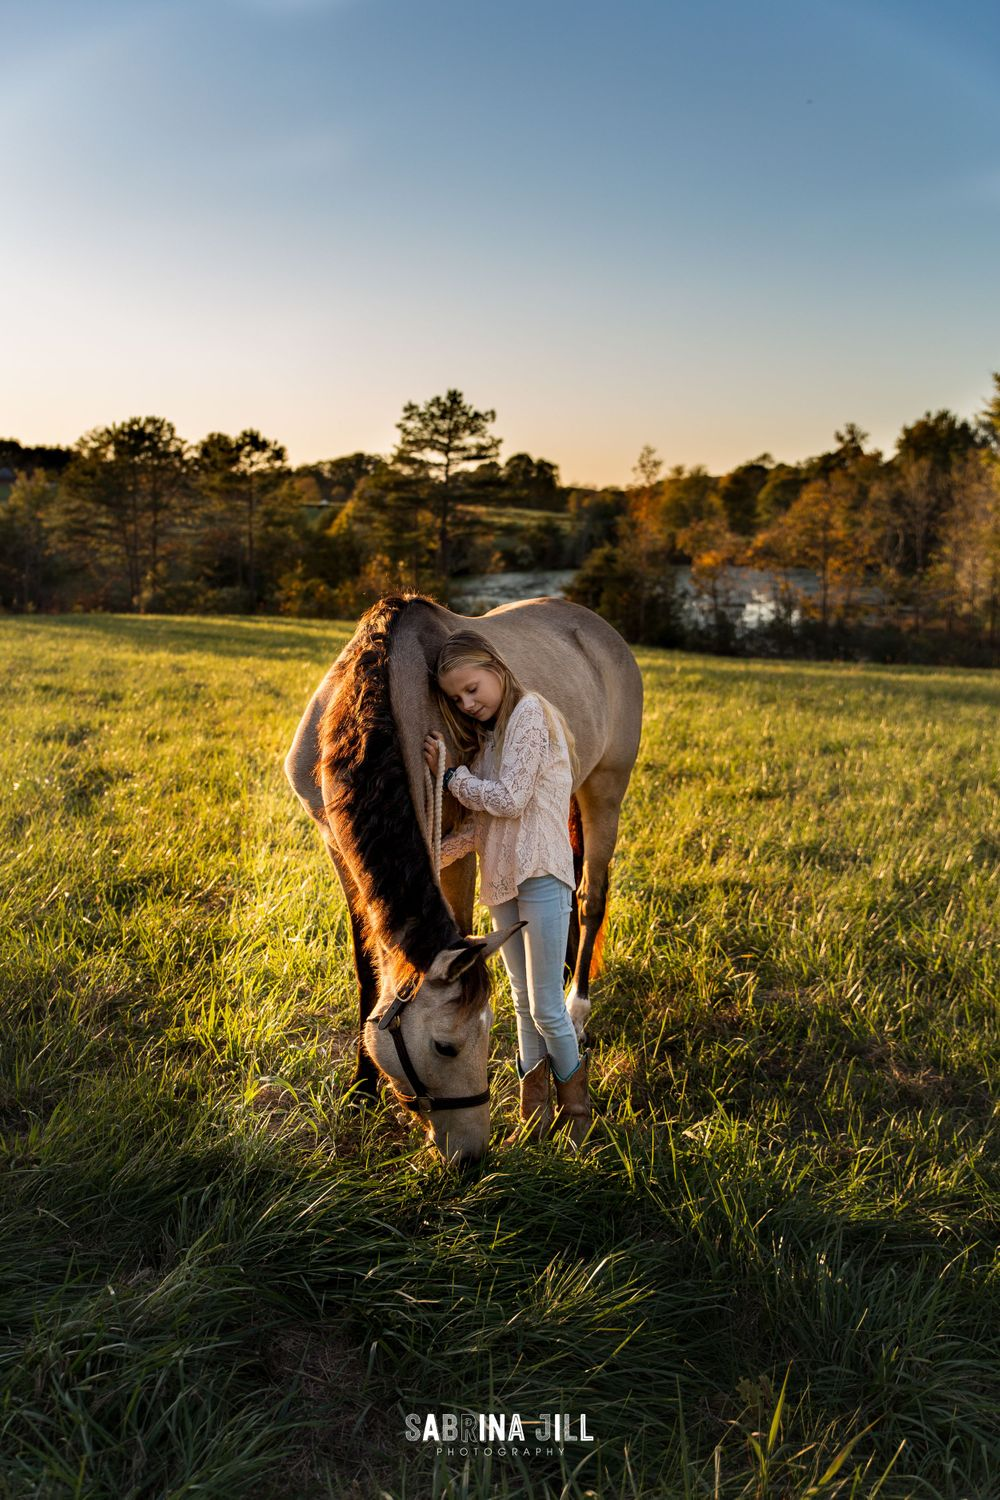 Girl leaning on her horse in Waxhaw, NC field